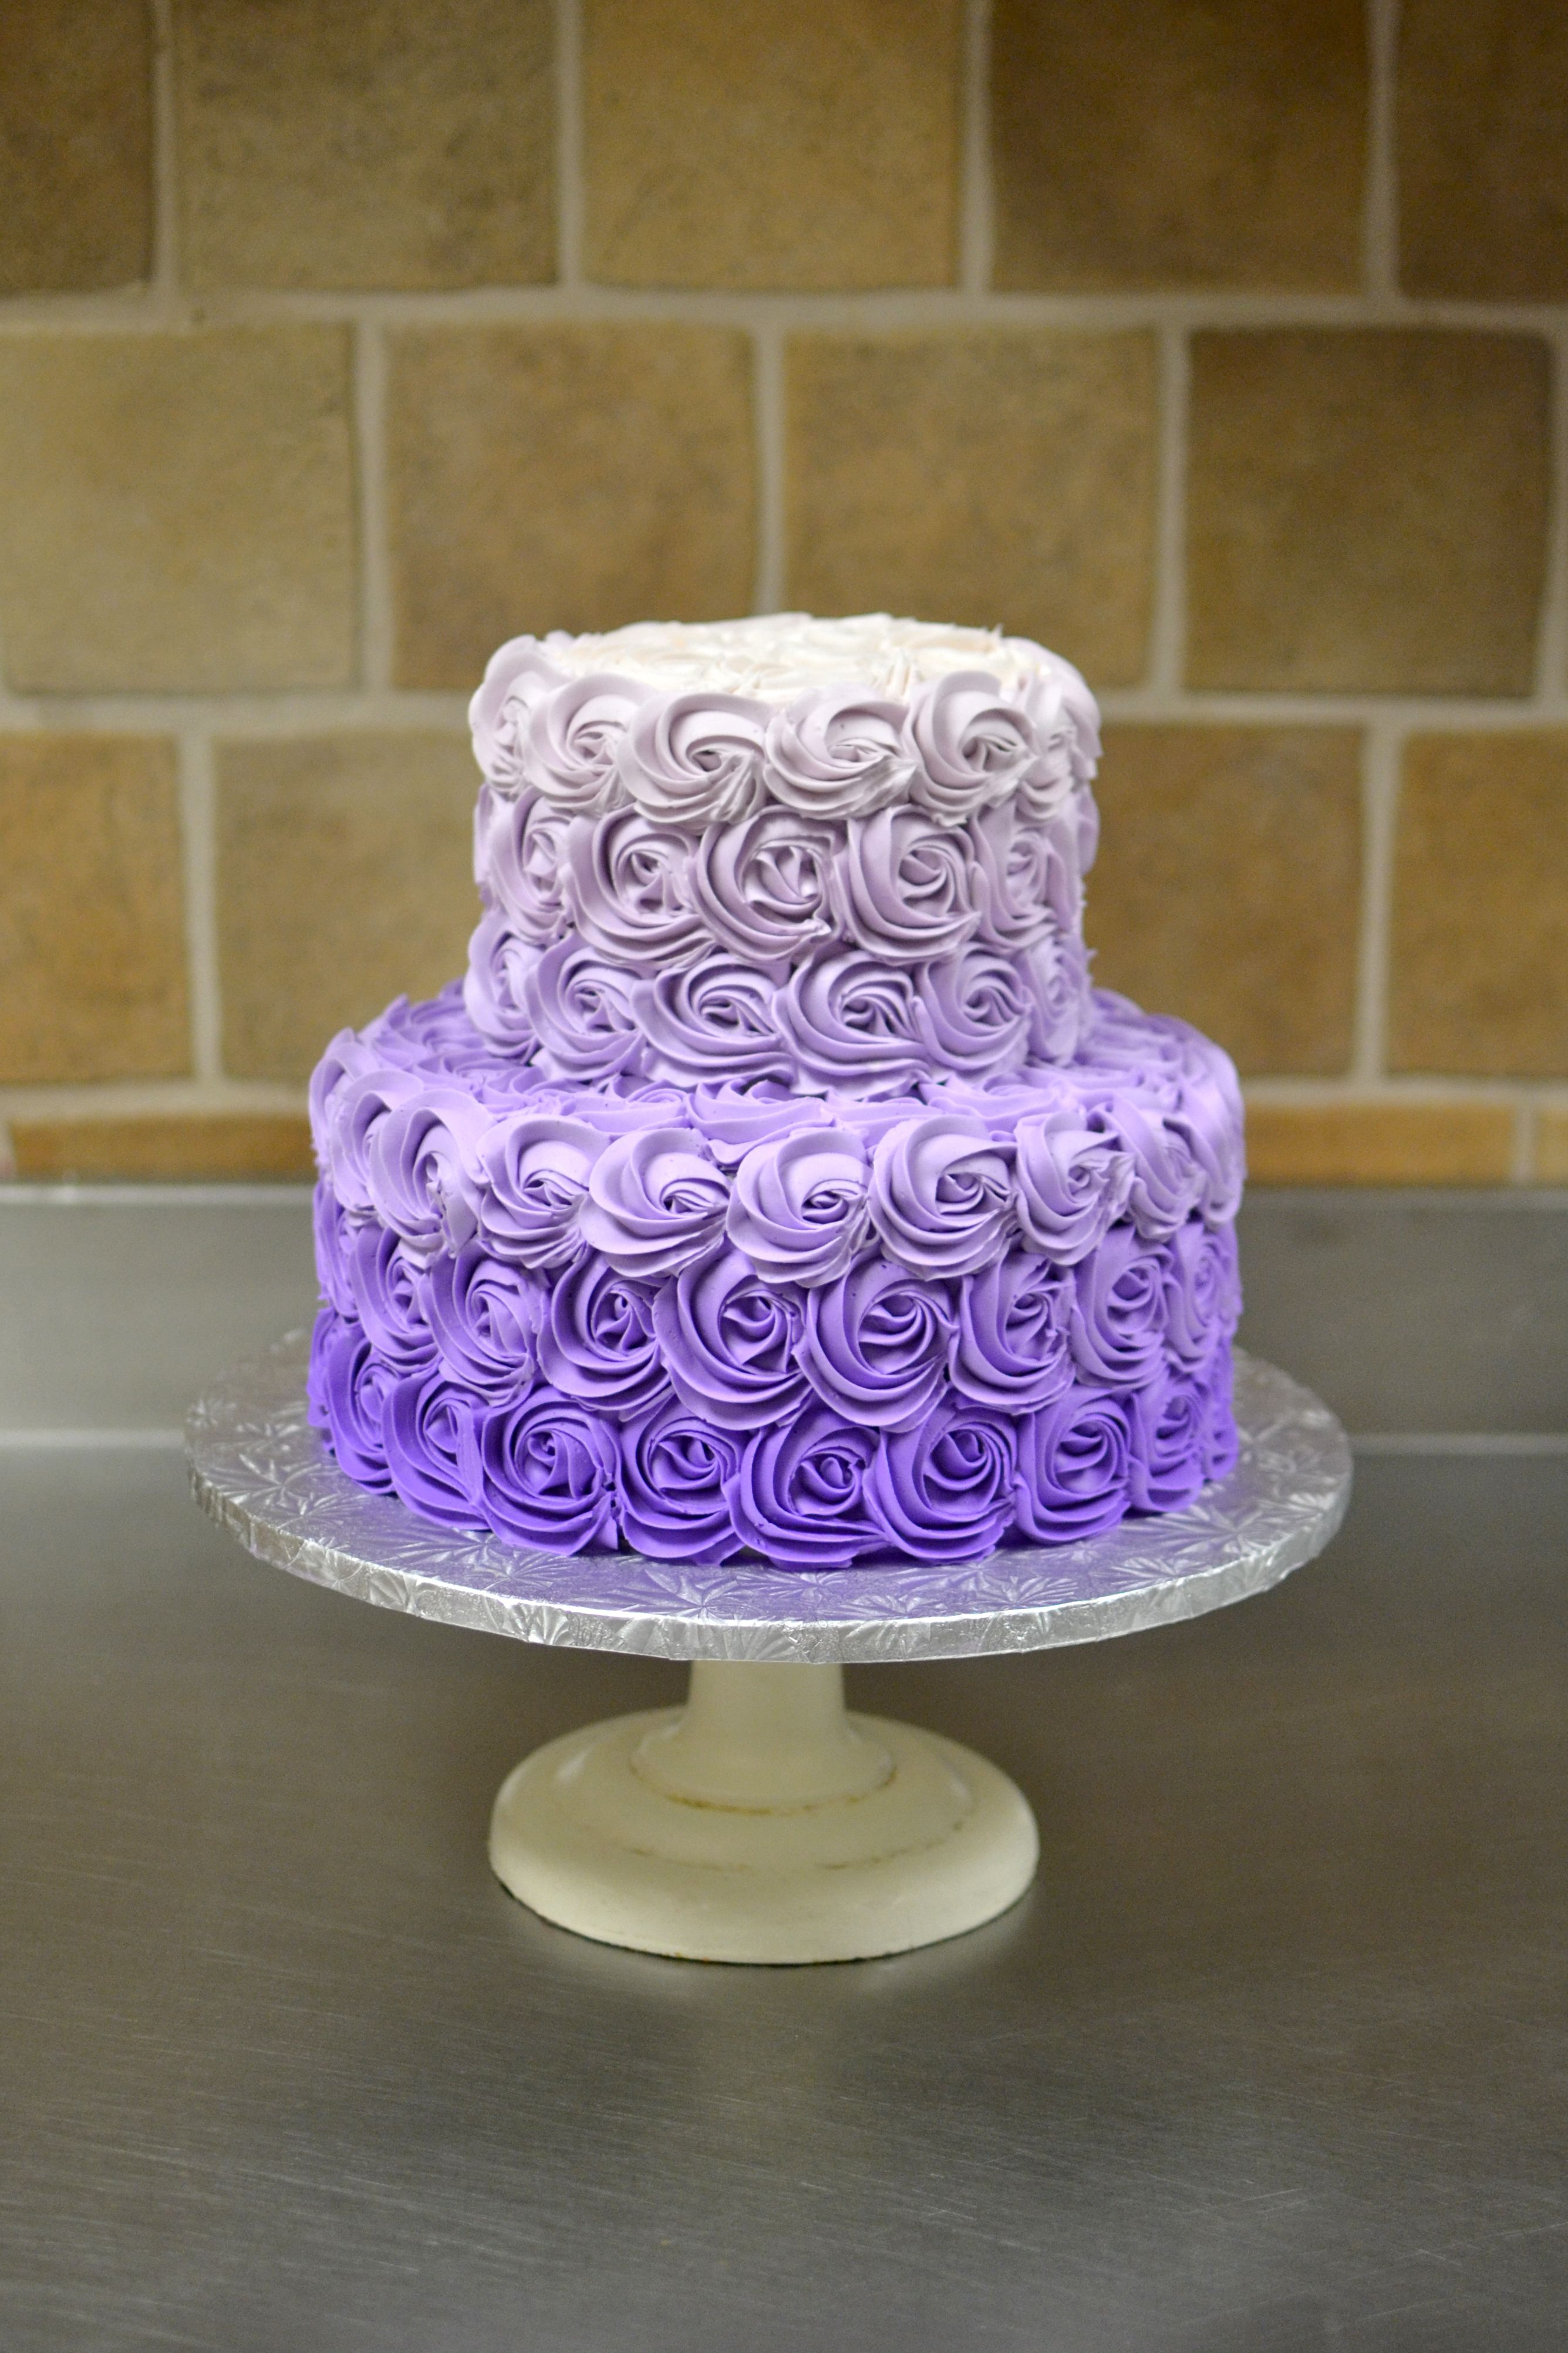 Santoni's Bakery Purple Gradient Rosette Cake (With images) | 13 birthday cake, Party cakes ...